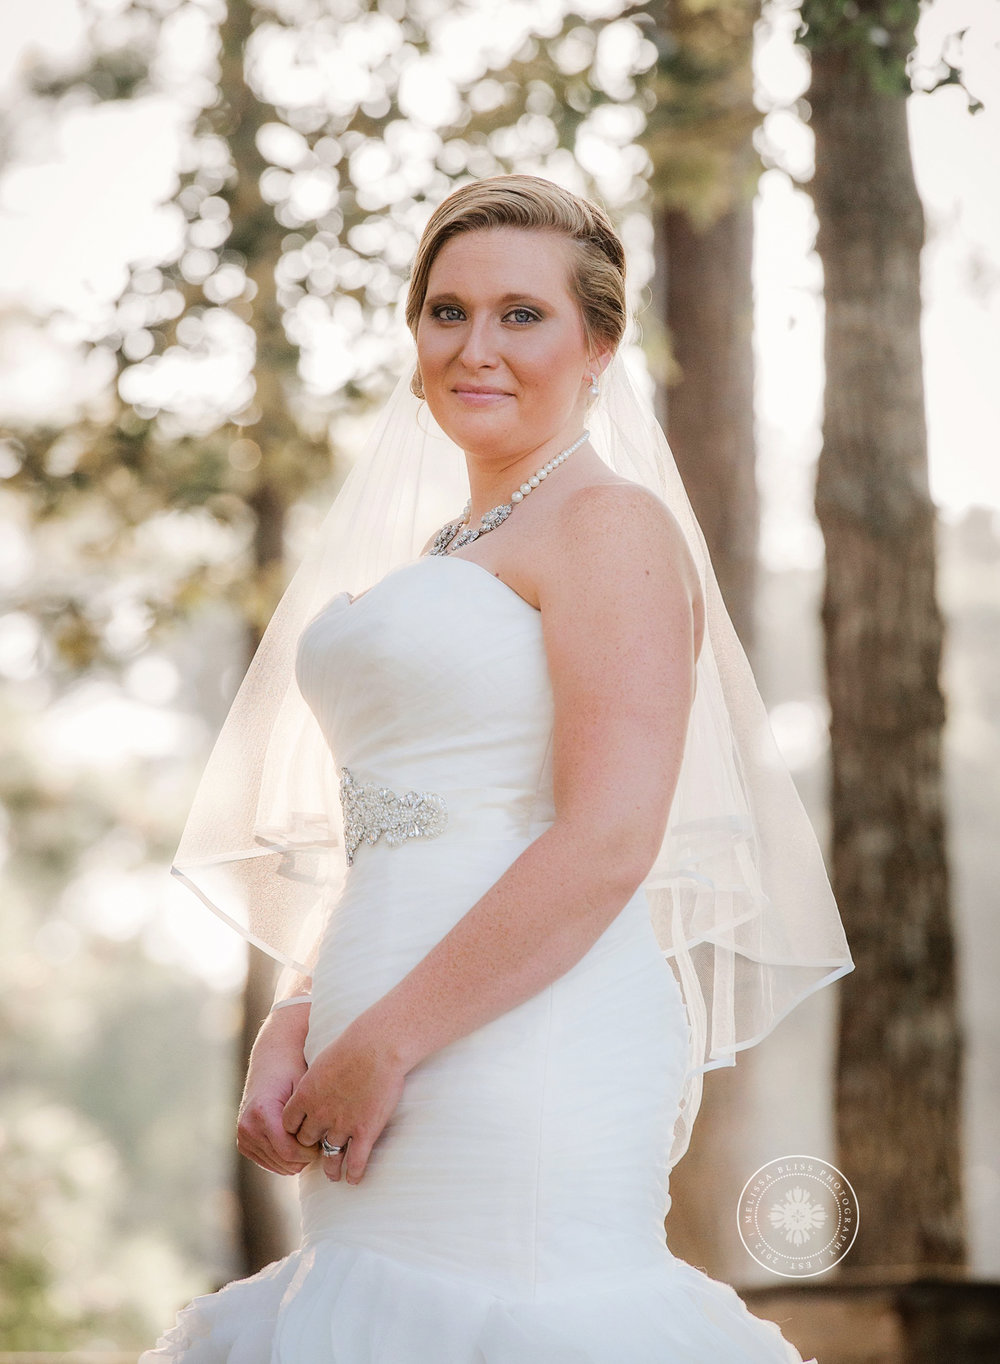 bride-portrait-virginia-wedding-photographers-melissa-bliss-photography-outdoor-wedding-inspiration-norfolk-williamsburg-virginia-beach-weddings